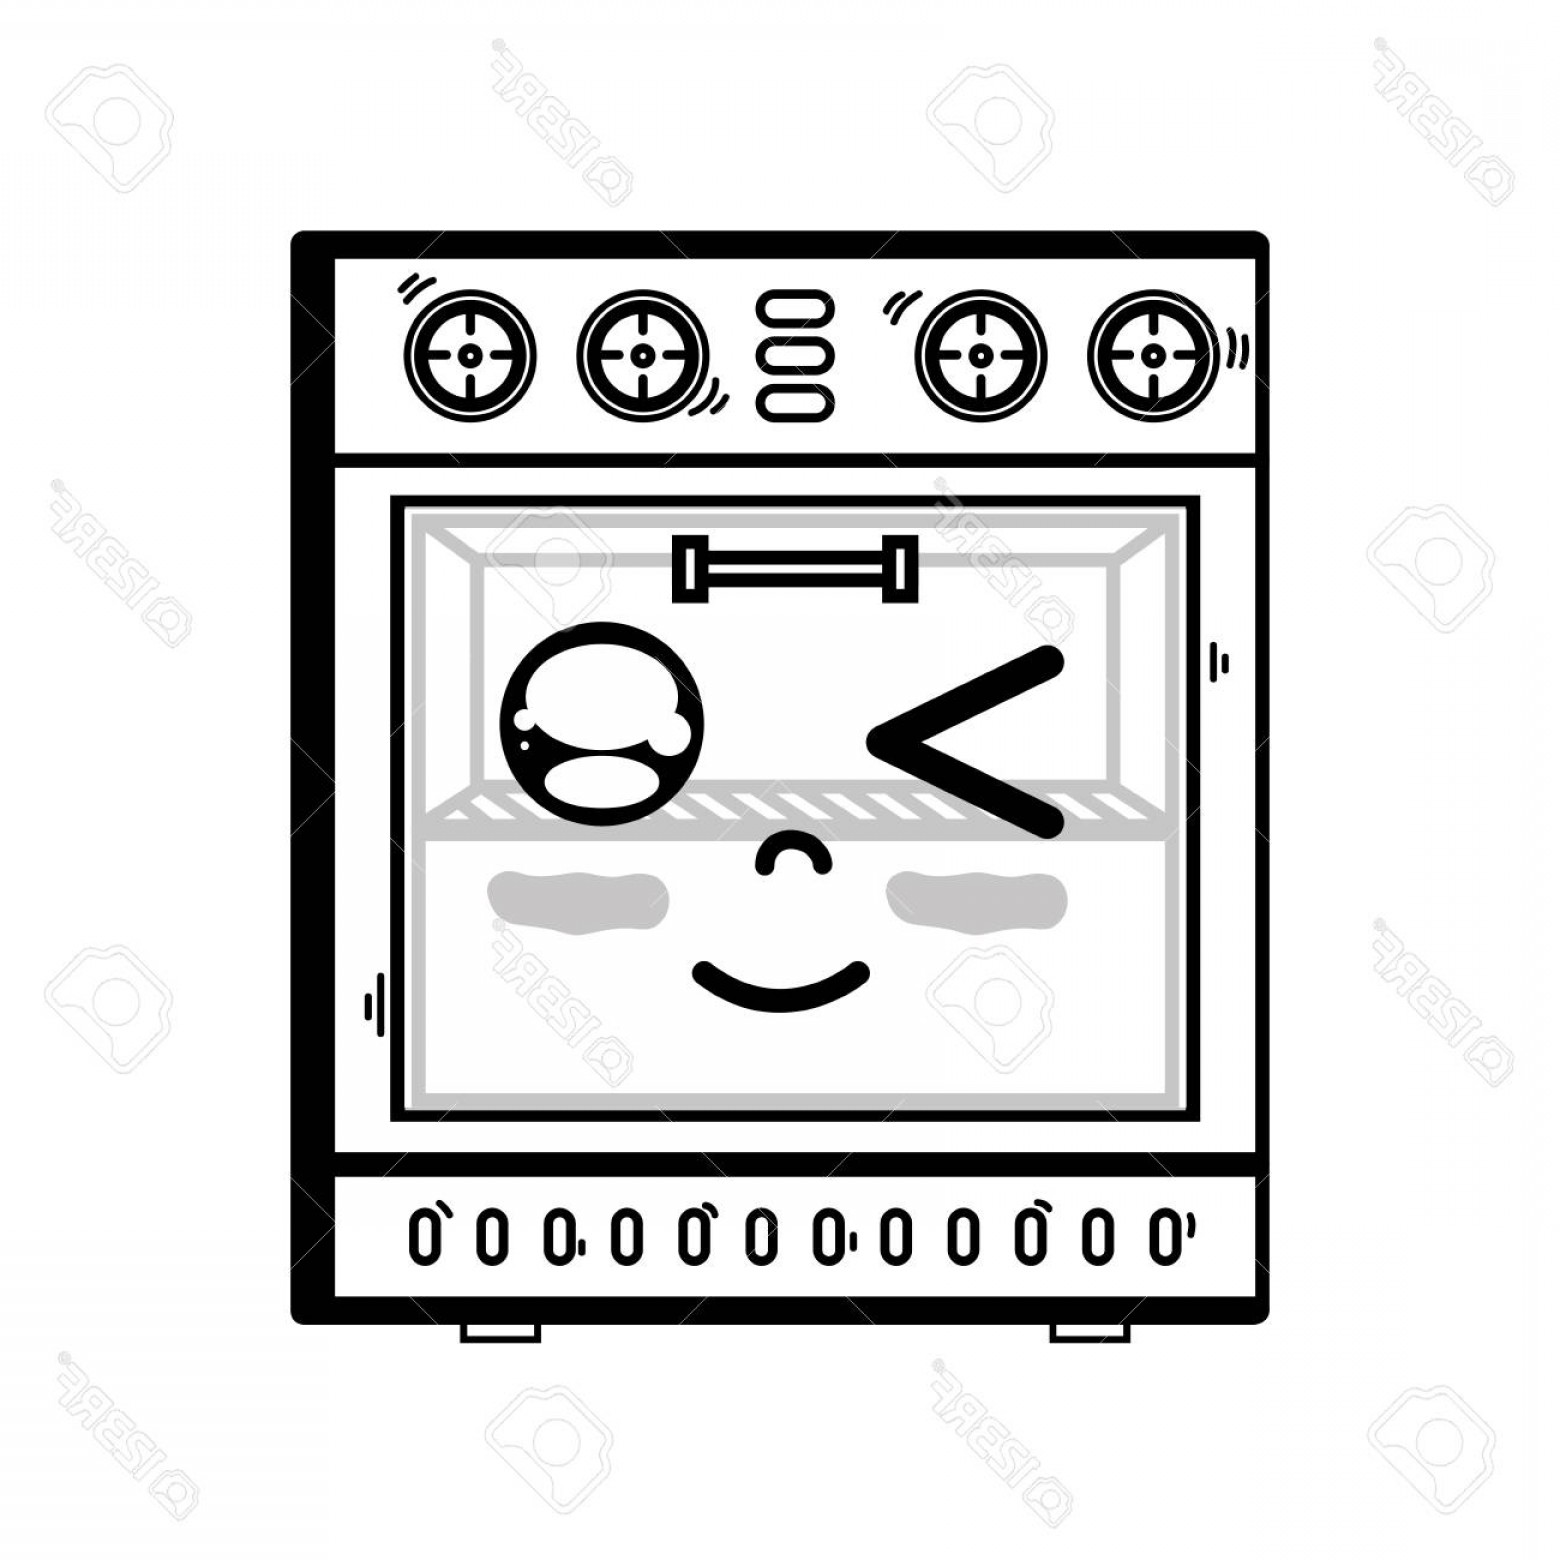 Happy Oven Vector: Photostock Vector A Line Cute Happy Oven Technology